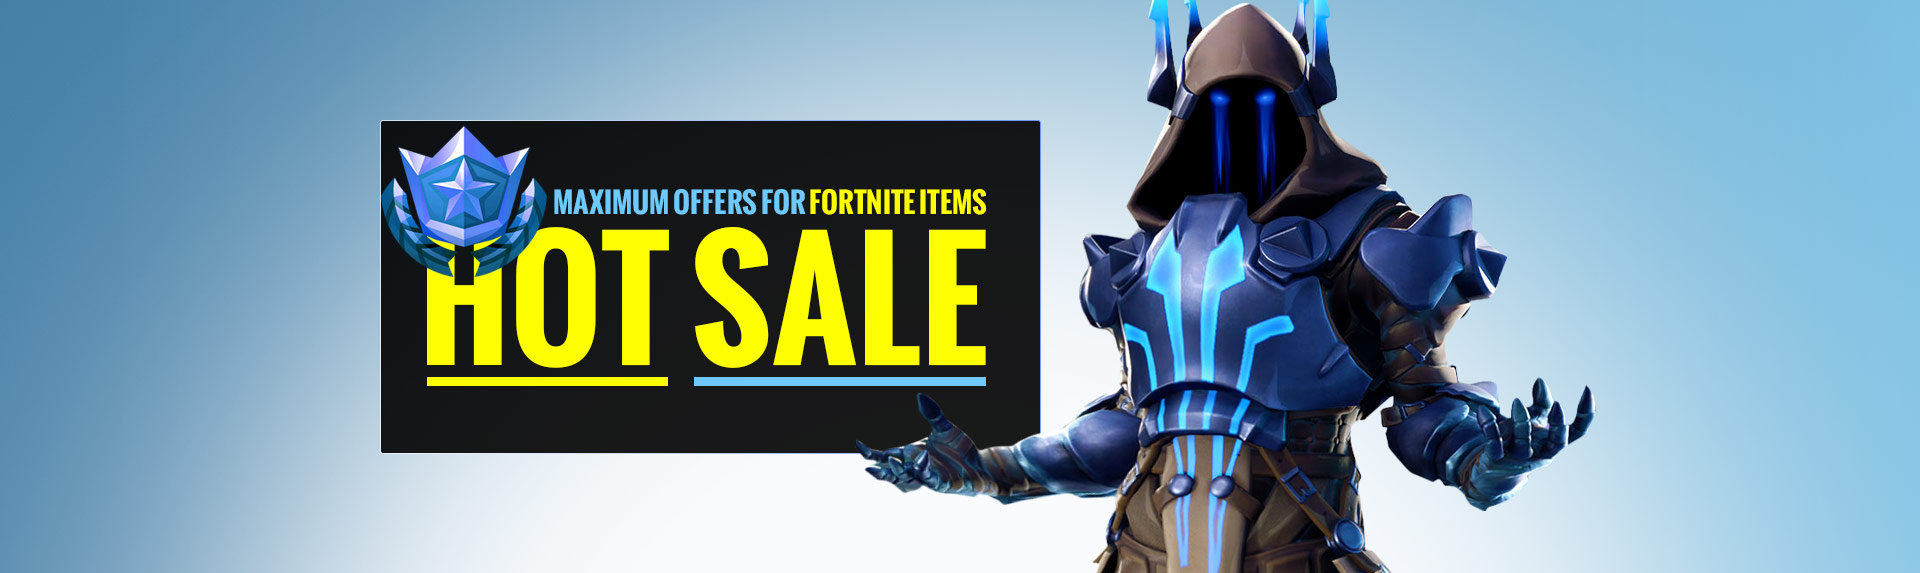 Cheap Fortnite Items Available,Hot Sale